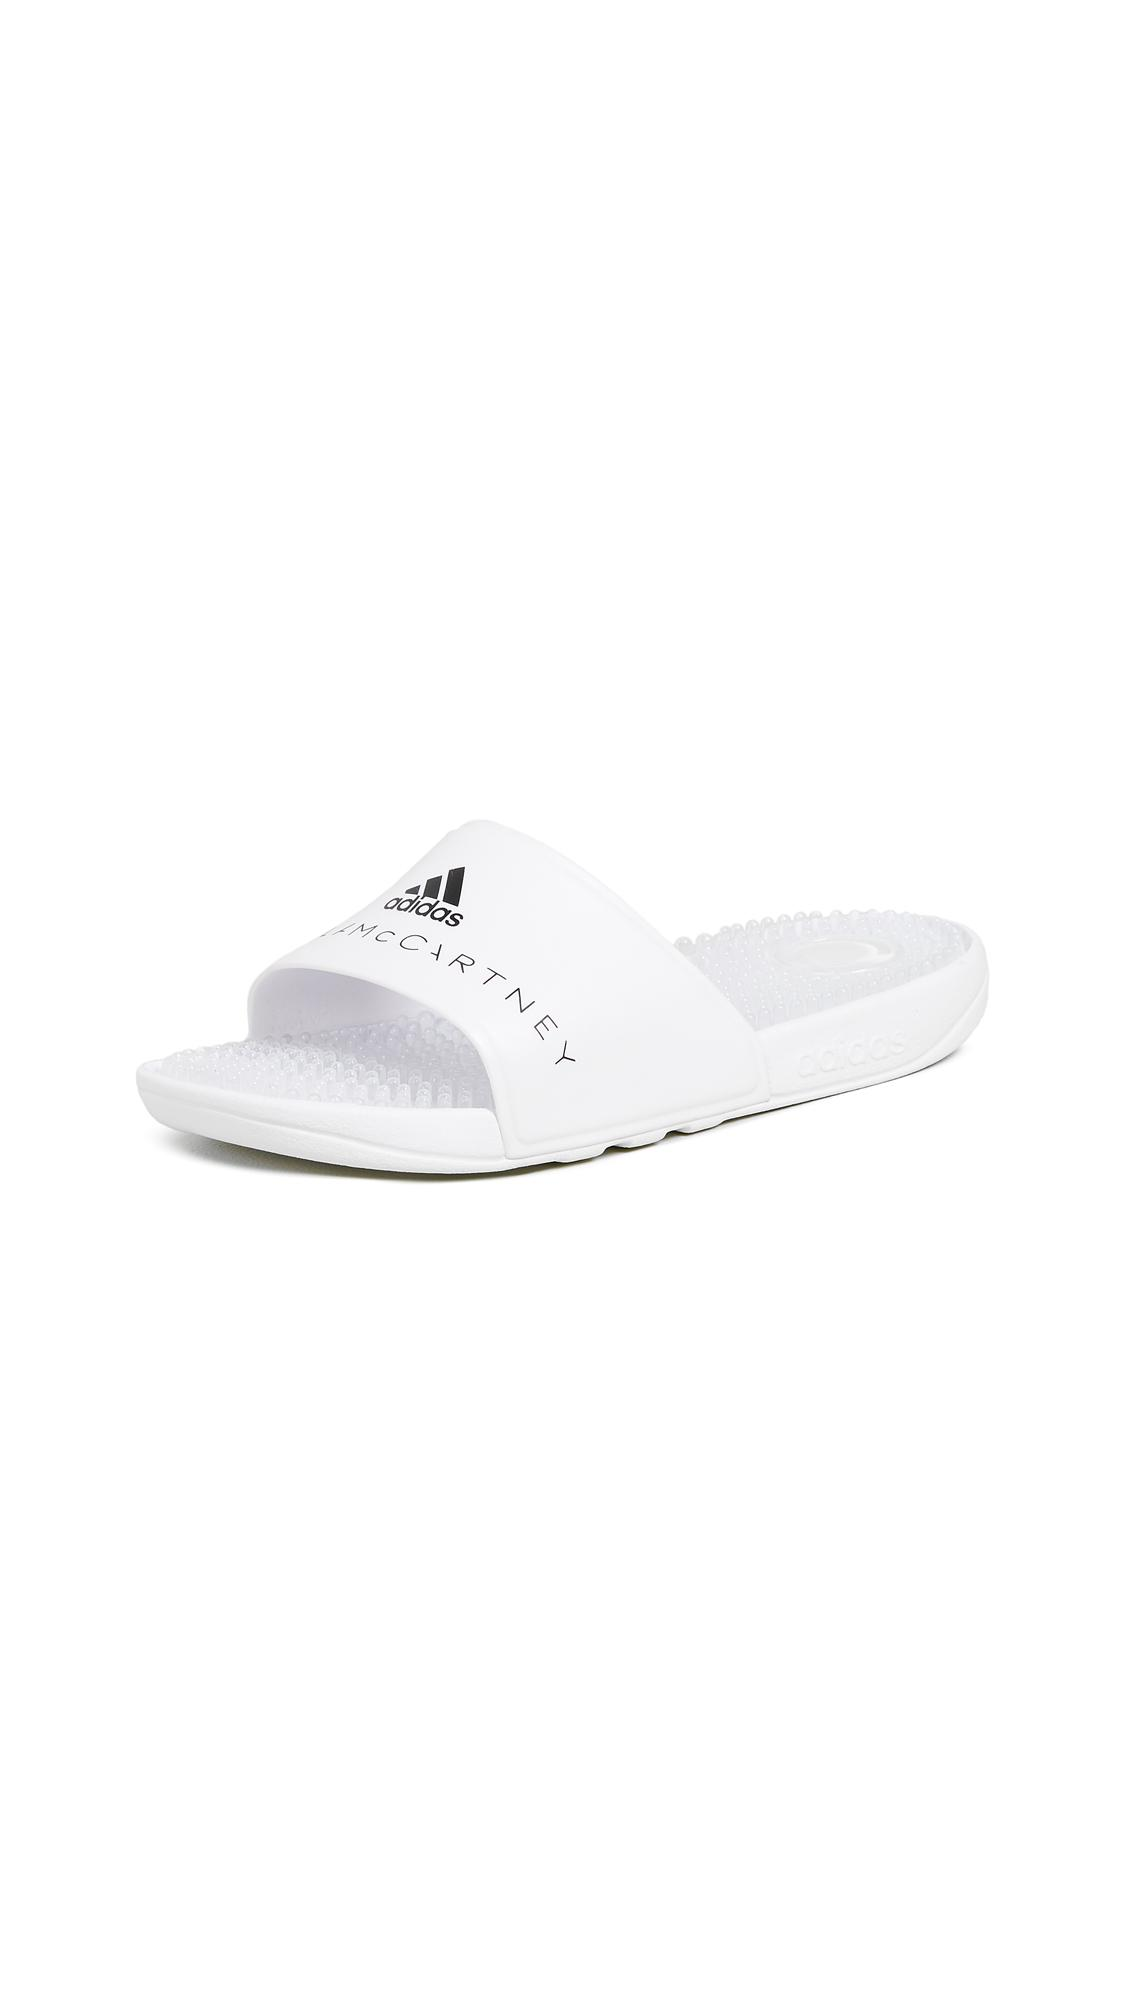 d45d17b48057 Adidas By Stella Mccartney Adissage W Slides In White White Core Black